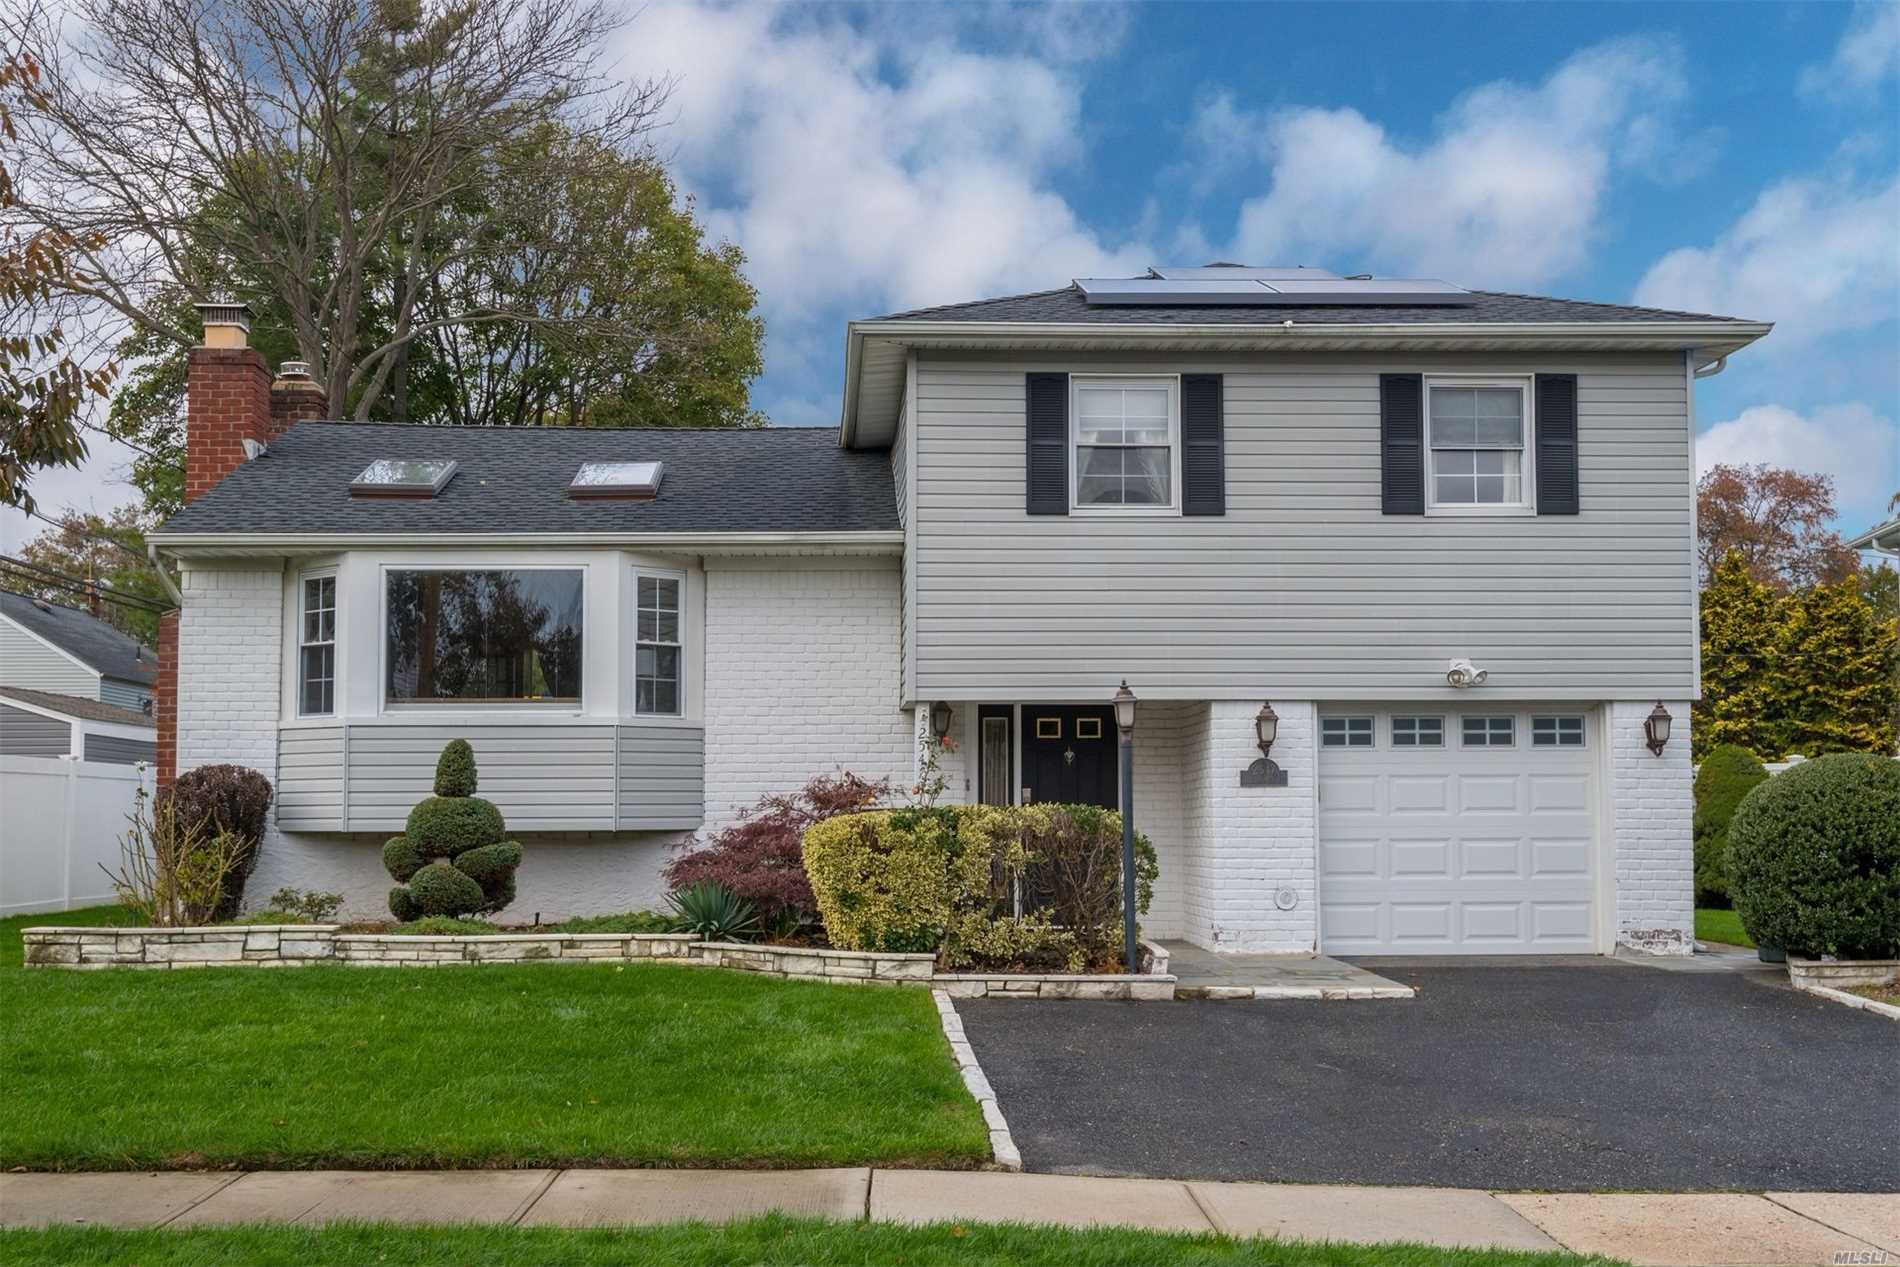 Beautiful, Updated/Exp Split -Perfect Move In Rdy Home W/3Skylights, Energy Eff: Solar Panels, Dishwasher, Mobile Controlled Thermos& Updated Windos & Roof. Eik W/Ss Appliances, Bfast Bar, Vented Hood For Cooking, Induction Stove Top, Microwave/Convection Oven. Part Fin Bsmnt, Exp. Fmly Rm& Open Concept Den/Dr. Vaulted Ceilings, Slider To Outdoor Deck/Patio In Large Yard.